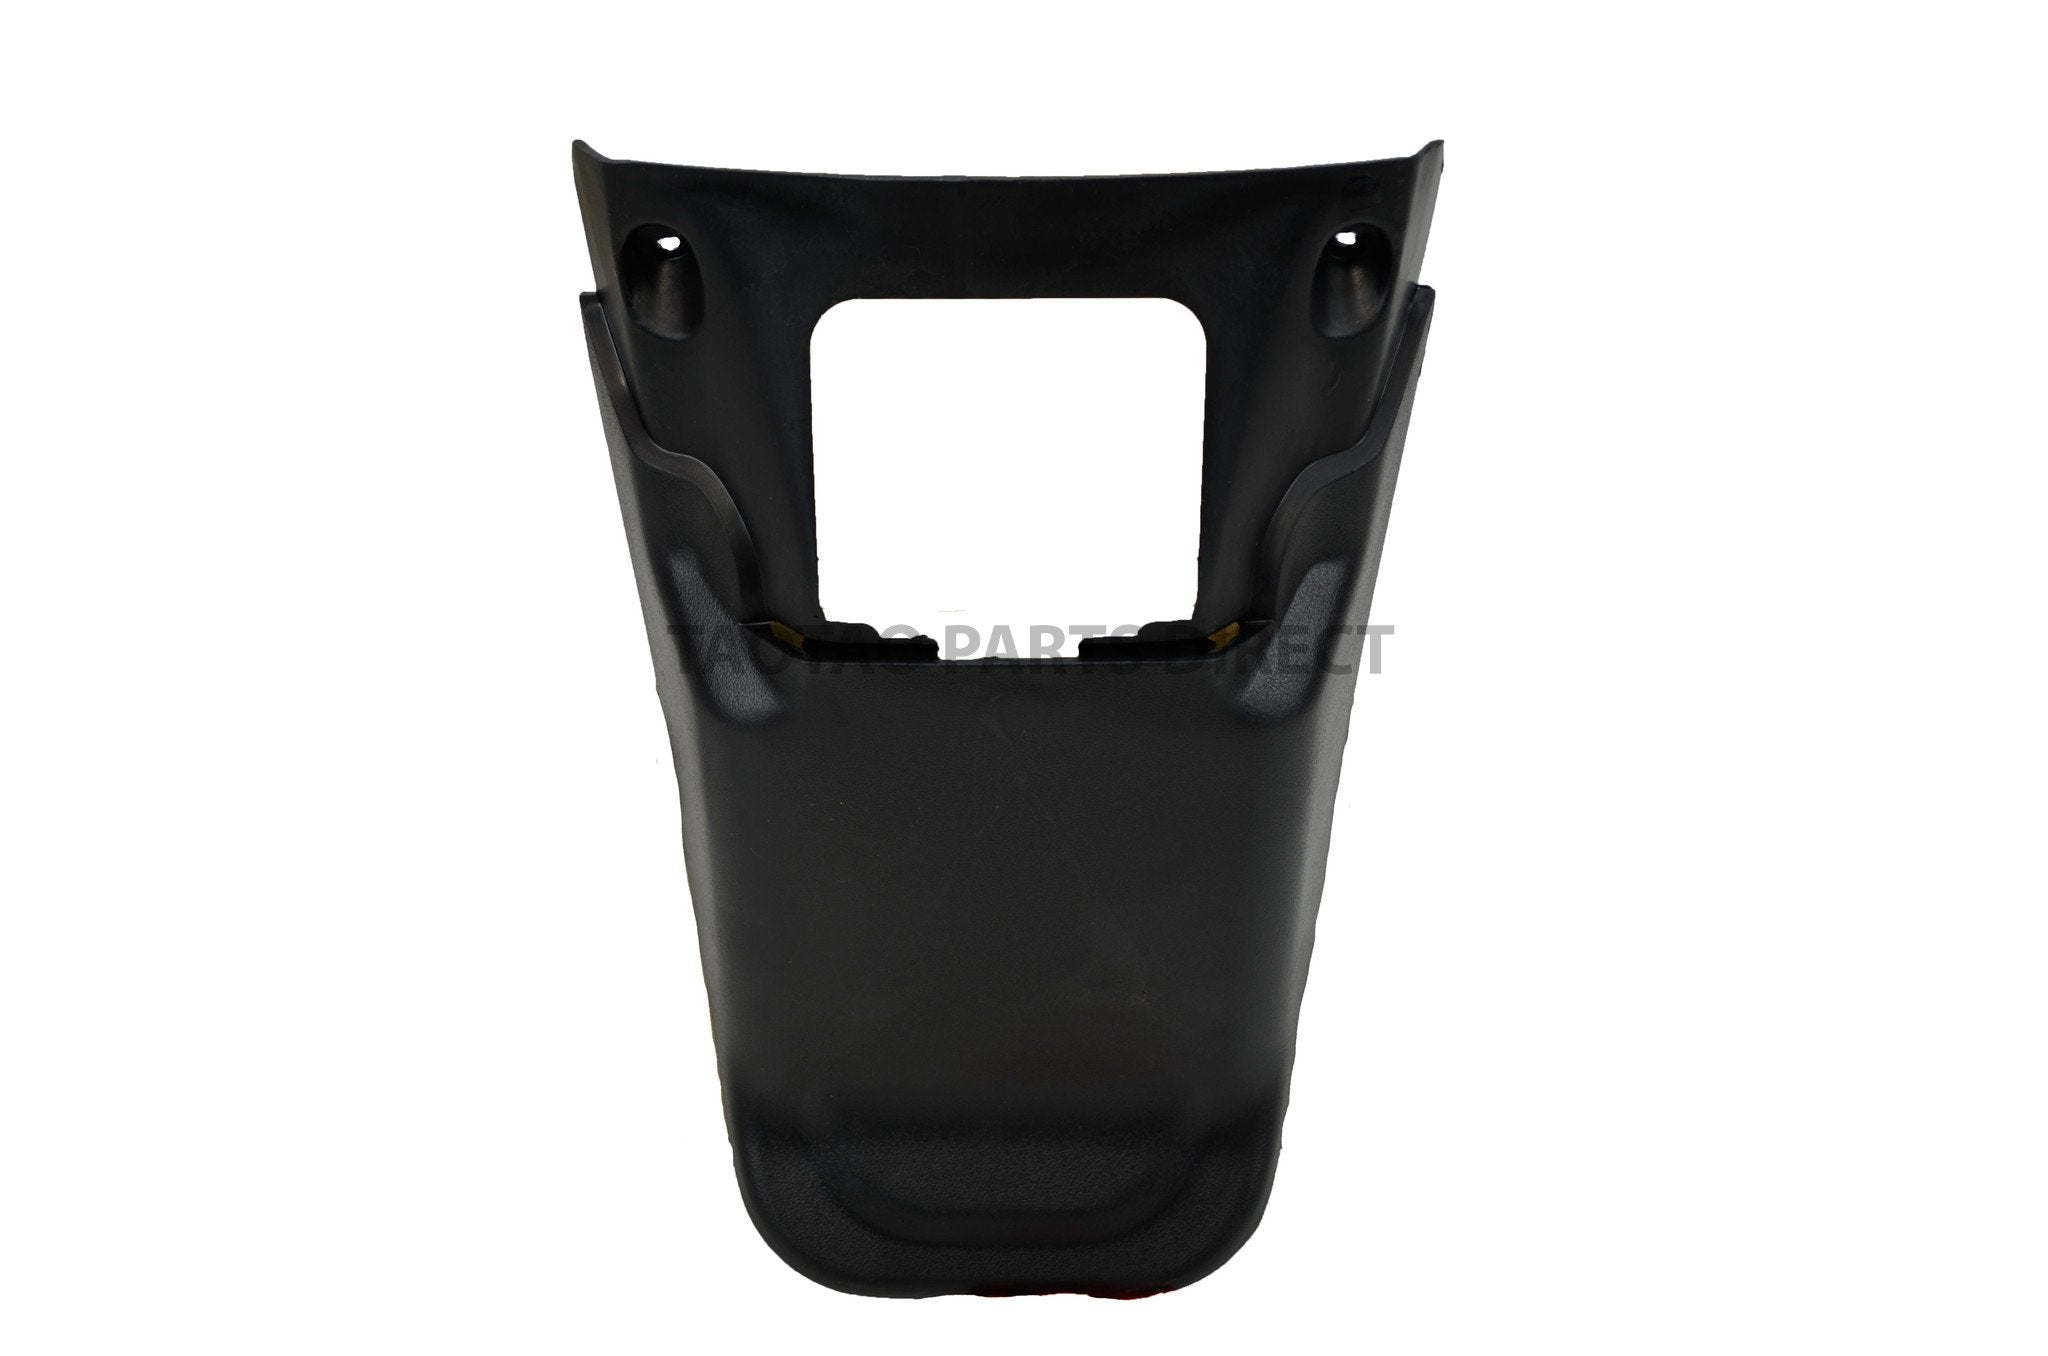 CY150B Rear Splash Guard - TaoTaoPartsDirect.com